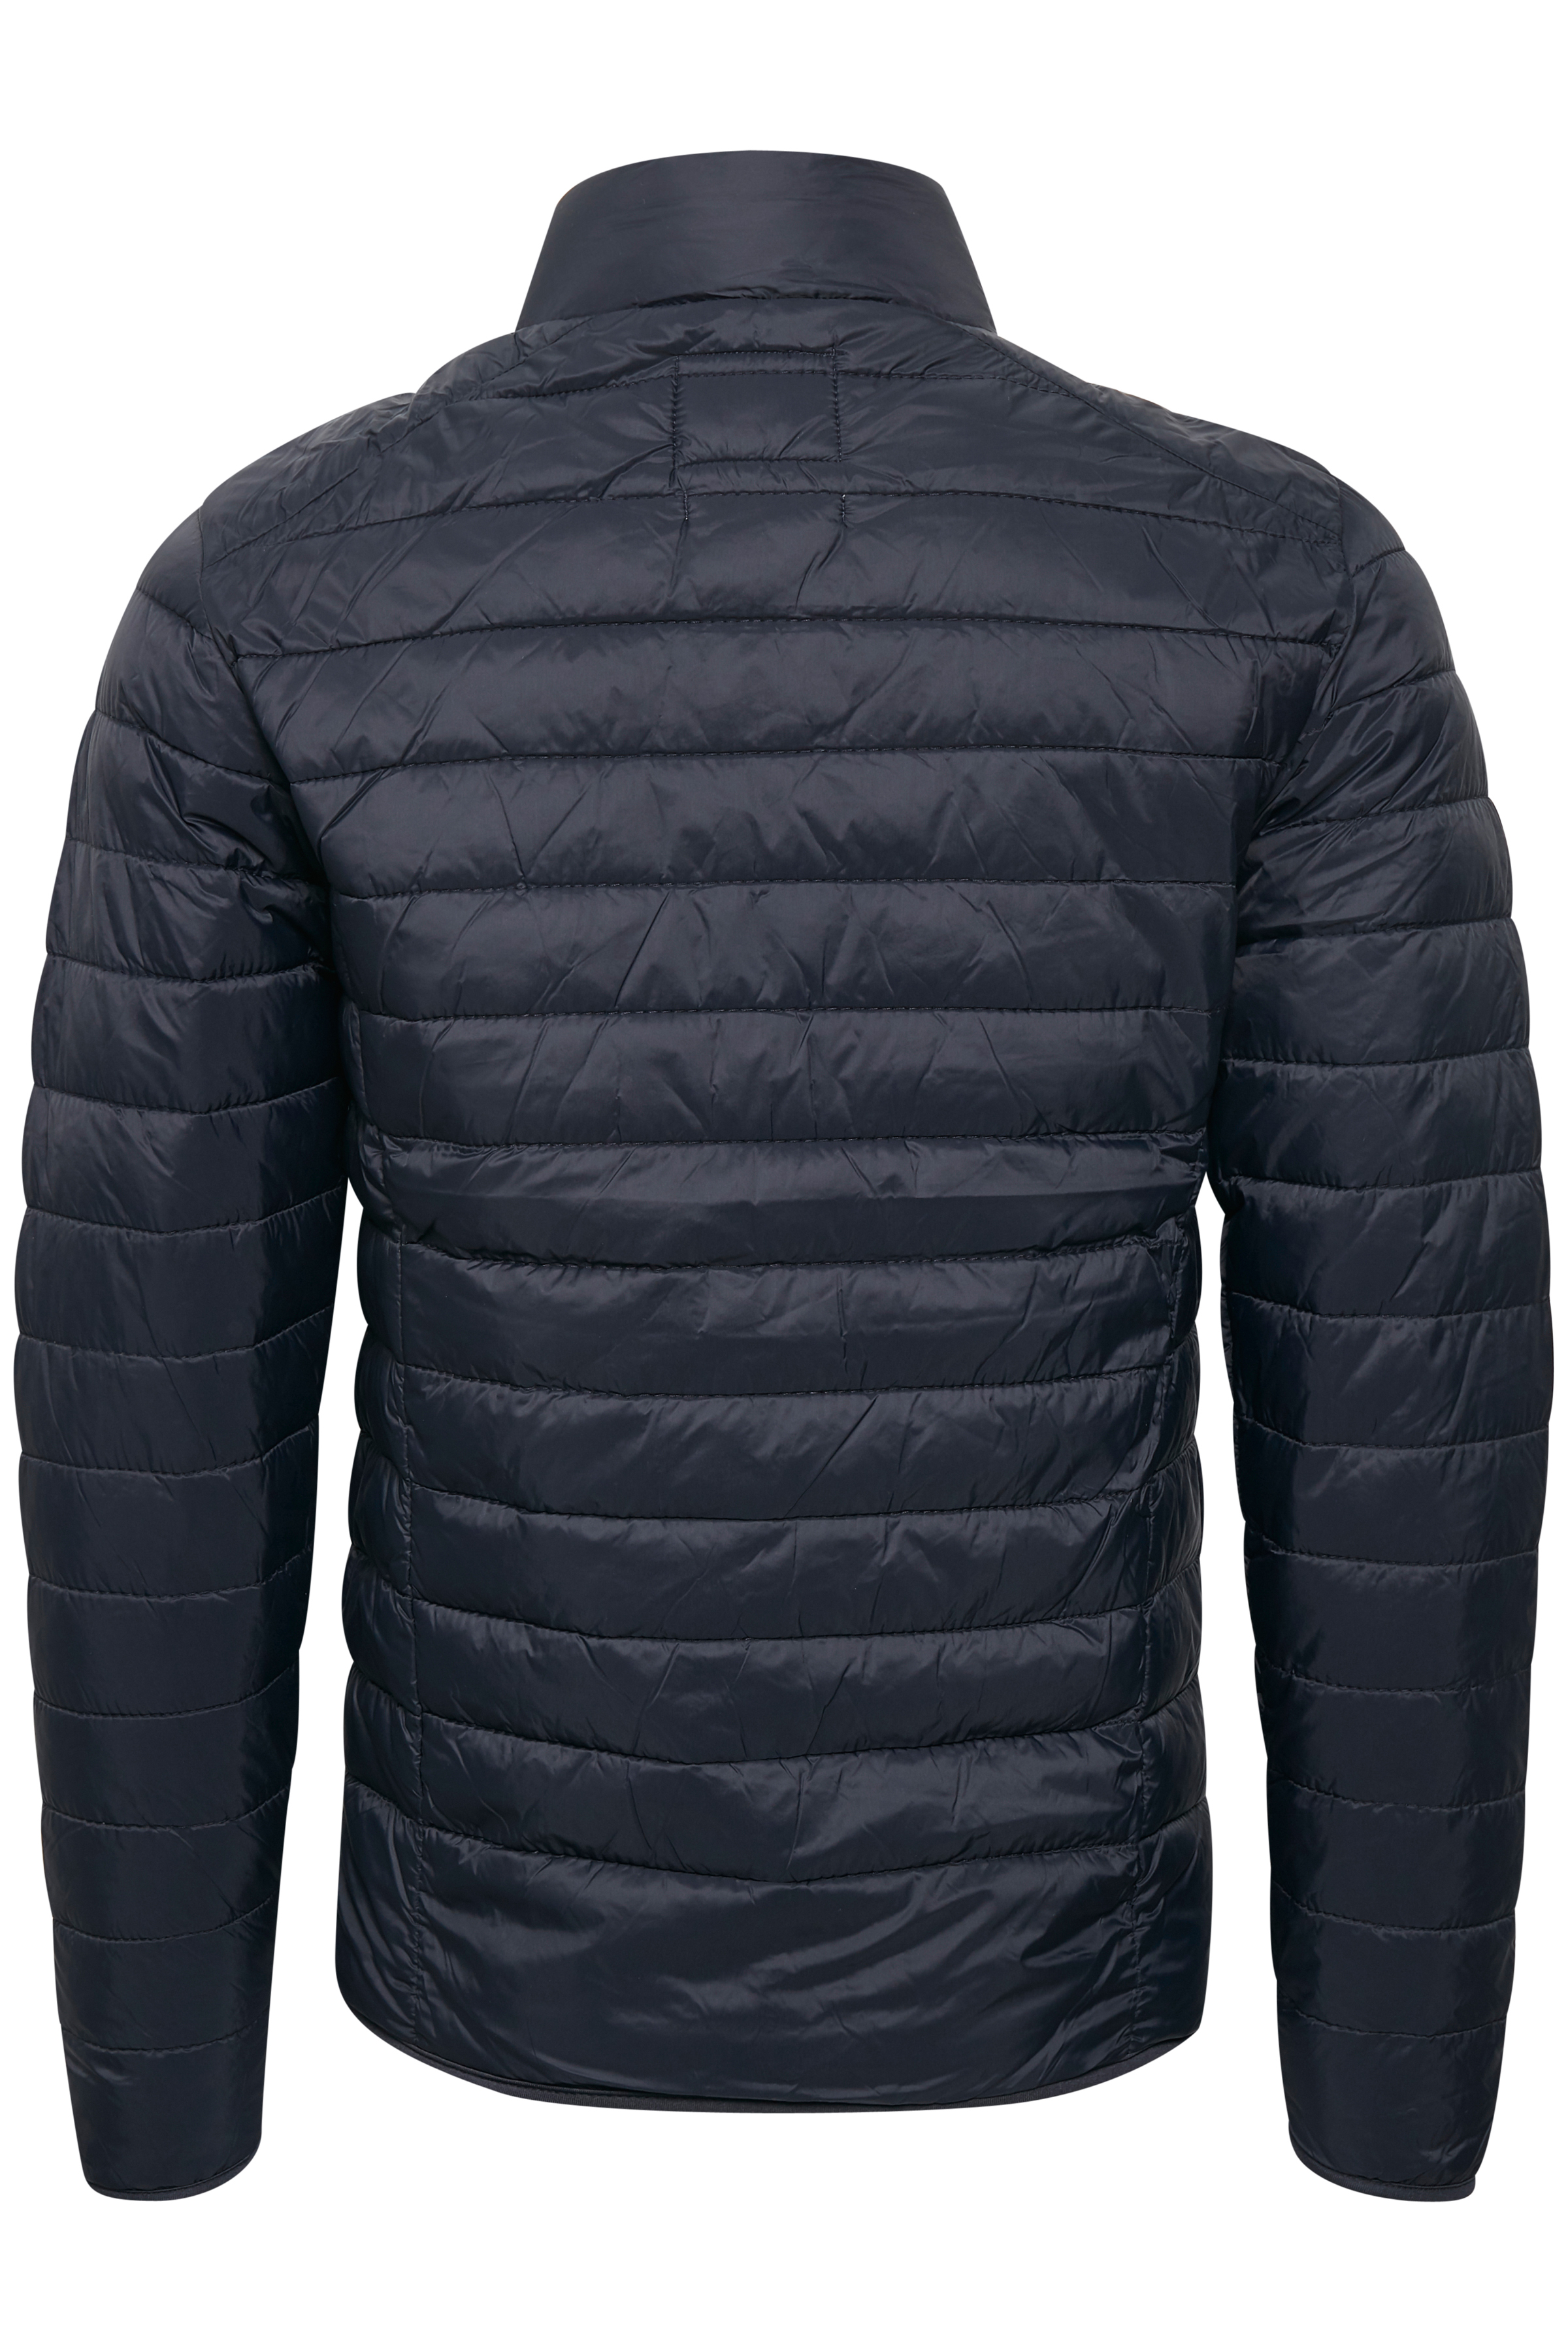 Dark Navy Blue Outerwear fra Blend He – Køb Dark Navy Blue Outerwear fra str. S-3XL her